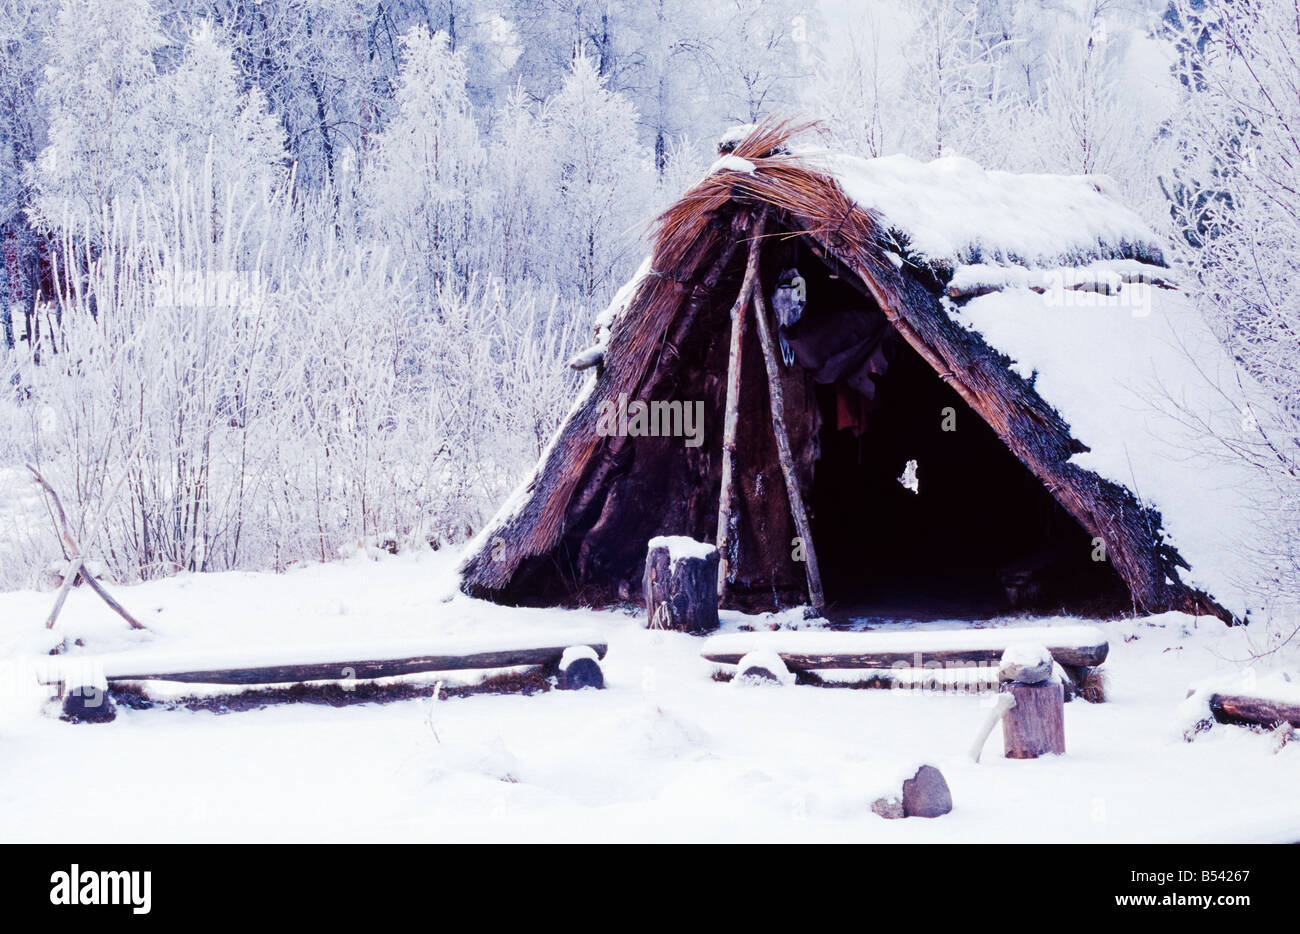 Rebuild hut from stone age - Stock Image